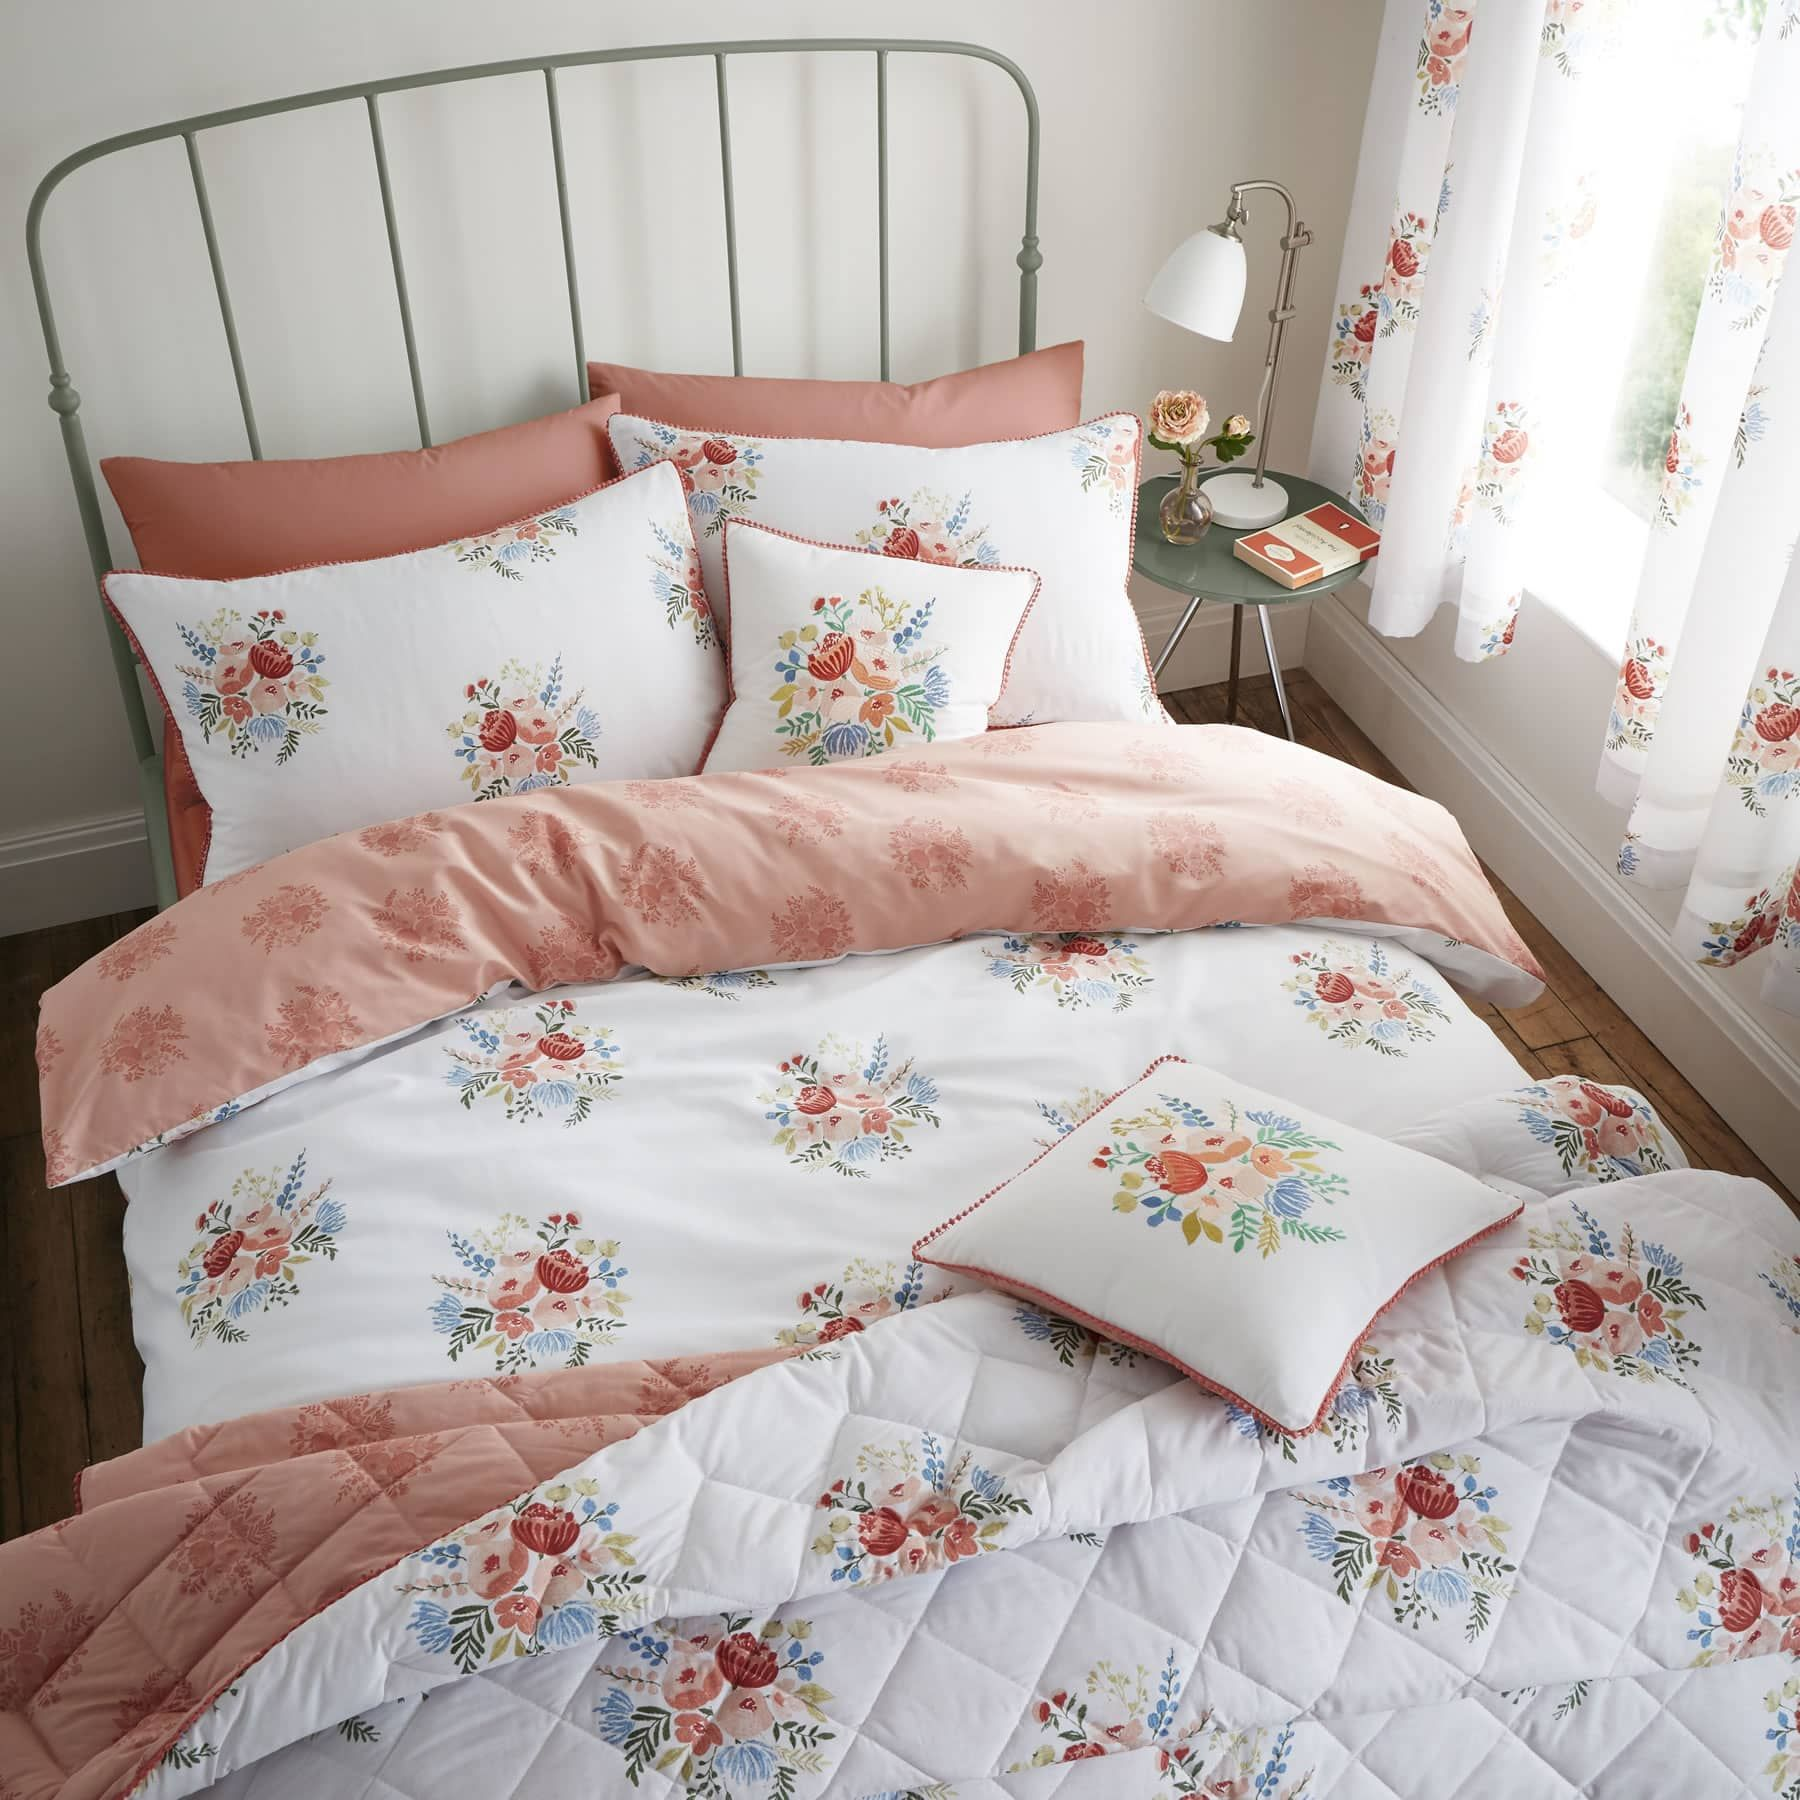 s Retro Floral Pastel Duvet Cover Set With Pillowcase By Catherine Lansfield